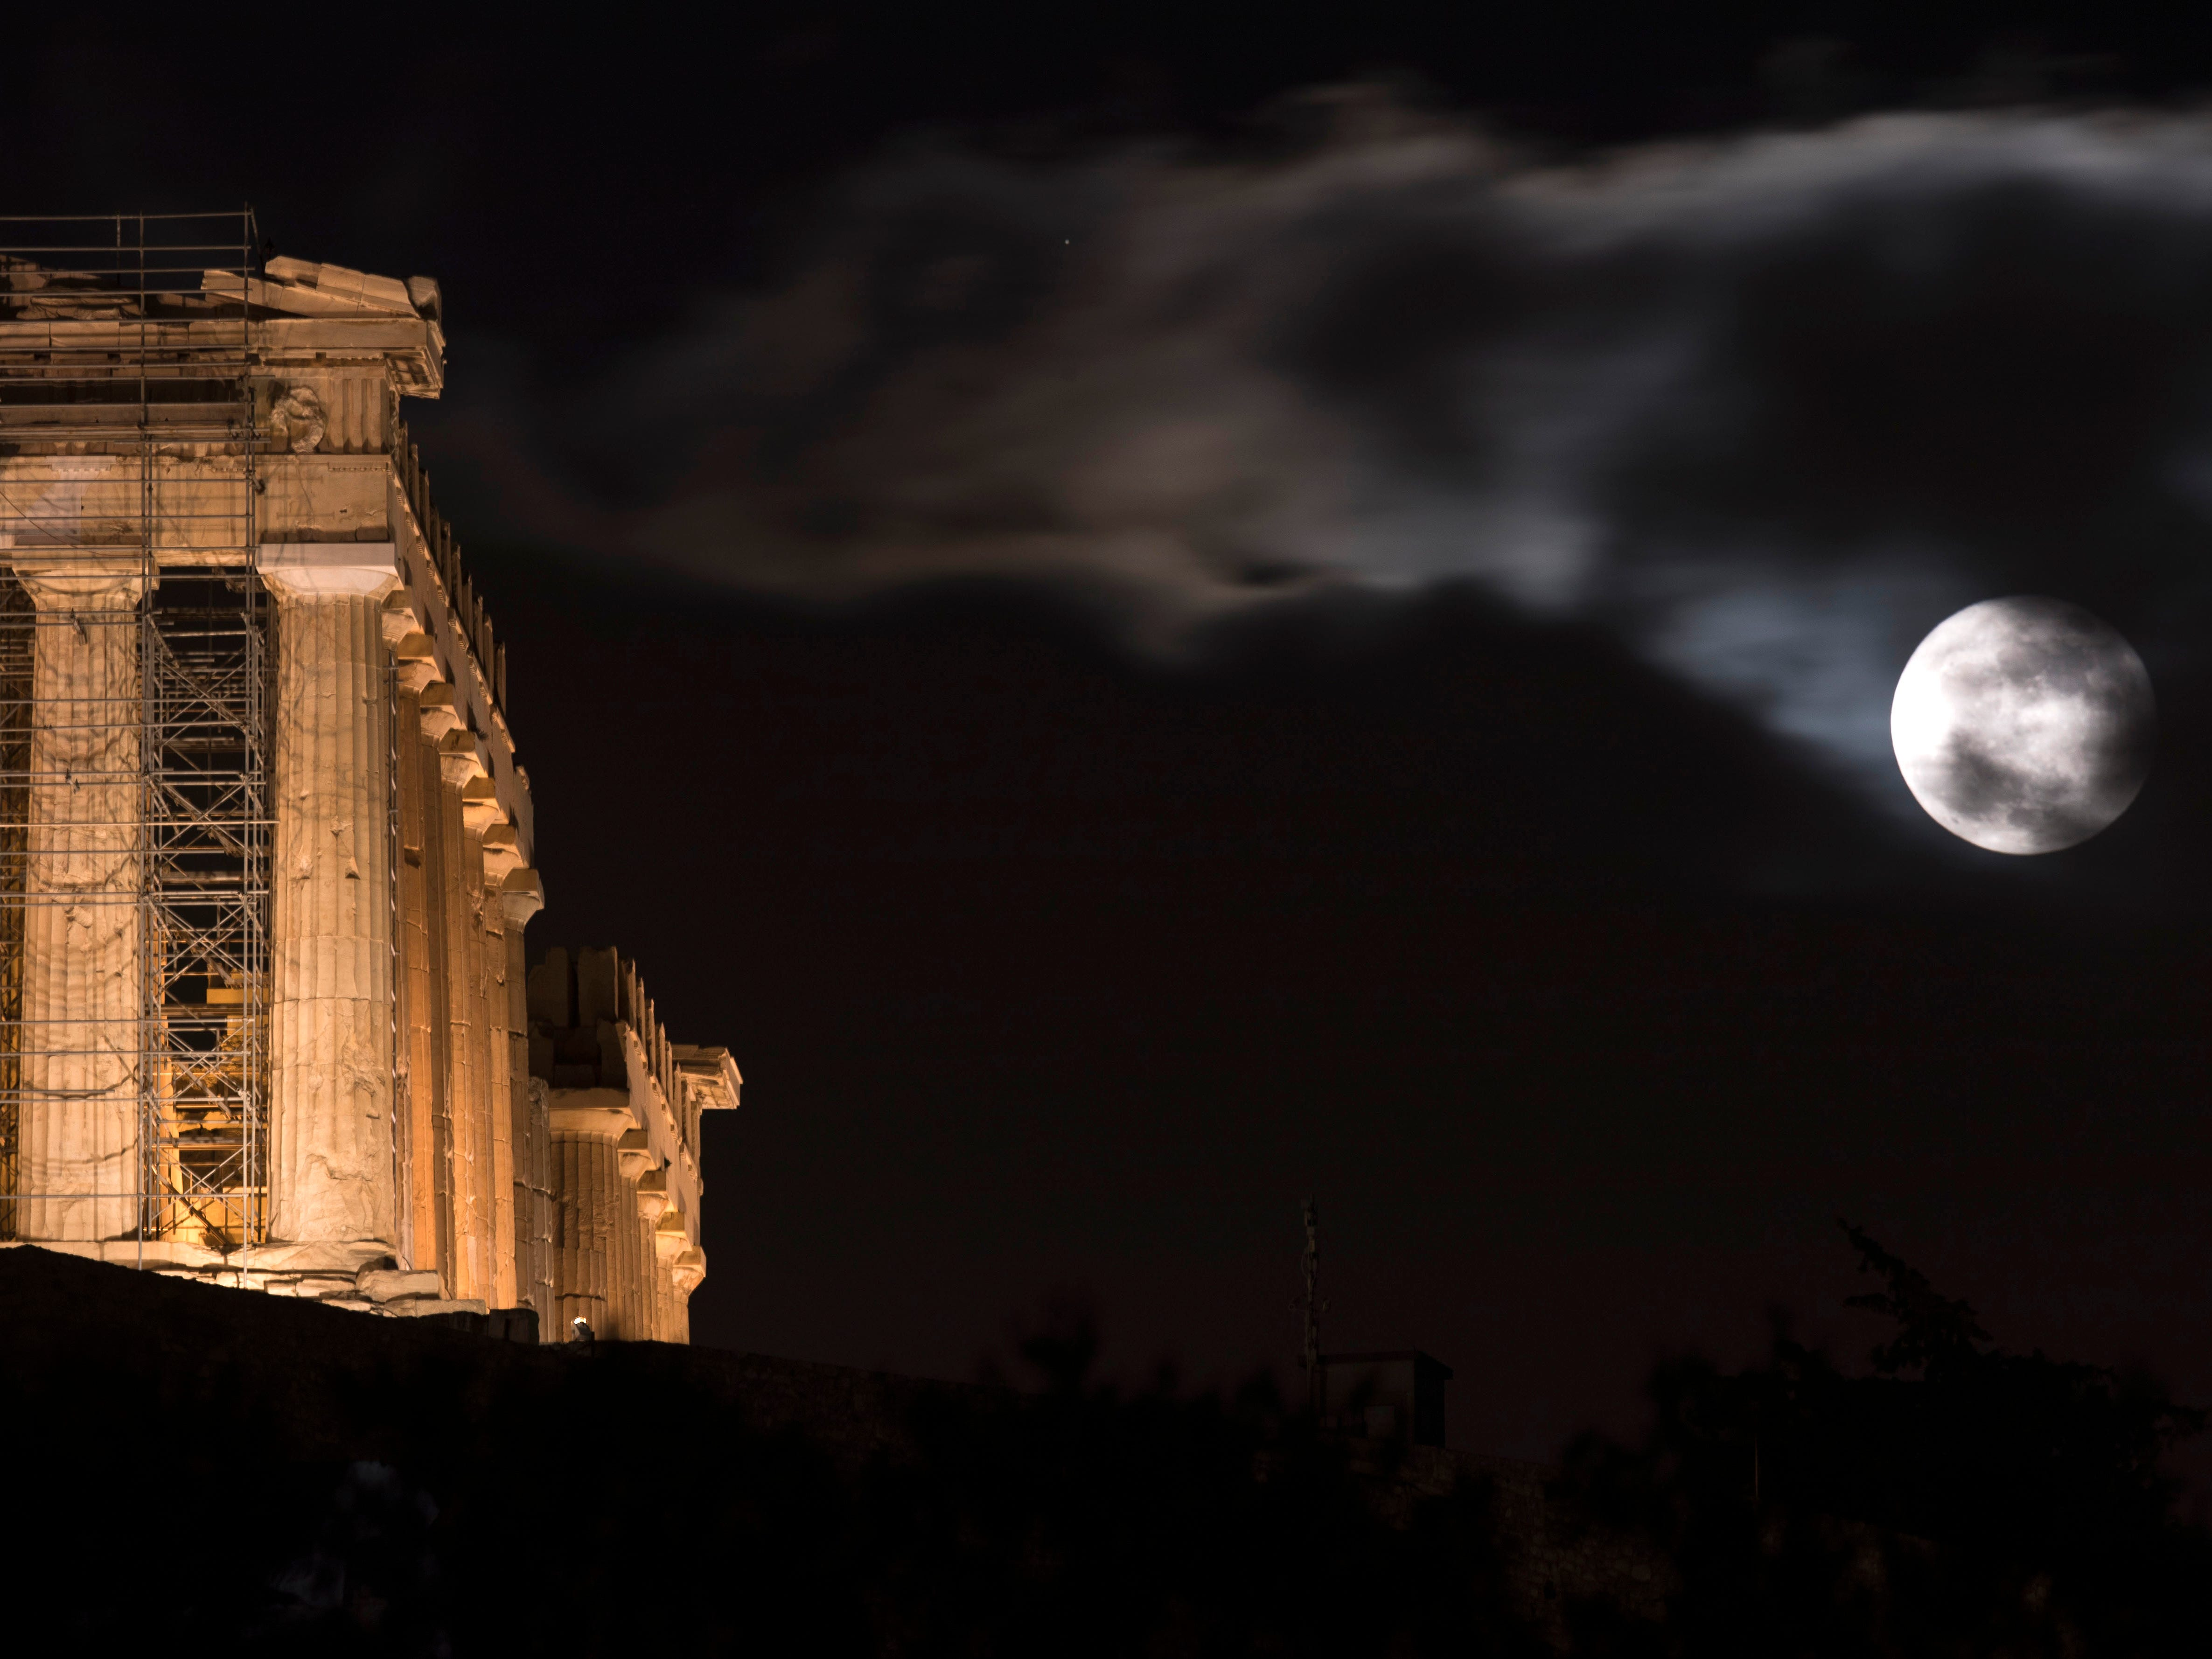 The full moon rises behind the 2,500-year-old Parthenon temple on the Acropolis of Athens on Friday, Nov. 23, 2018.